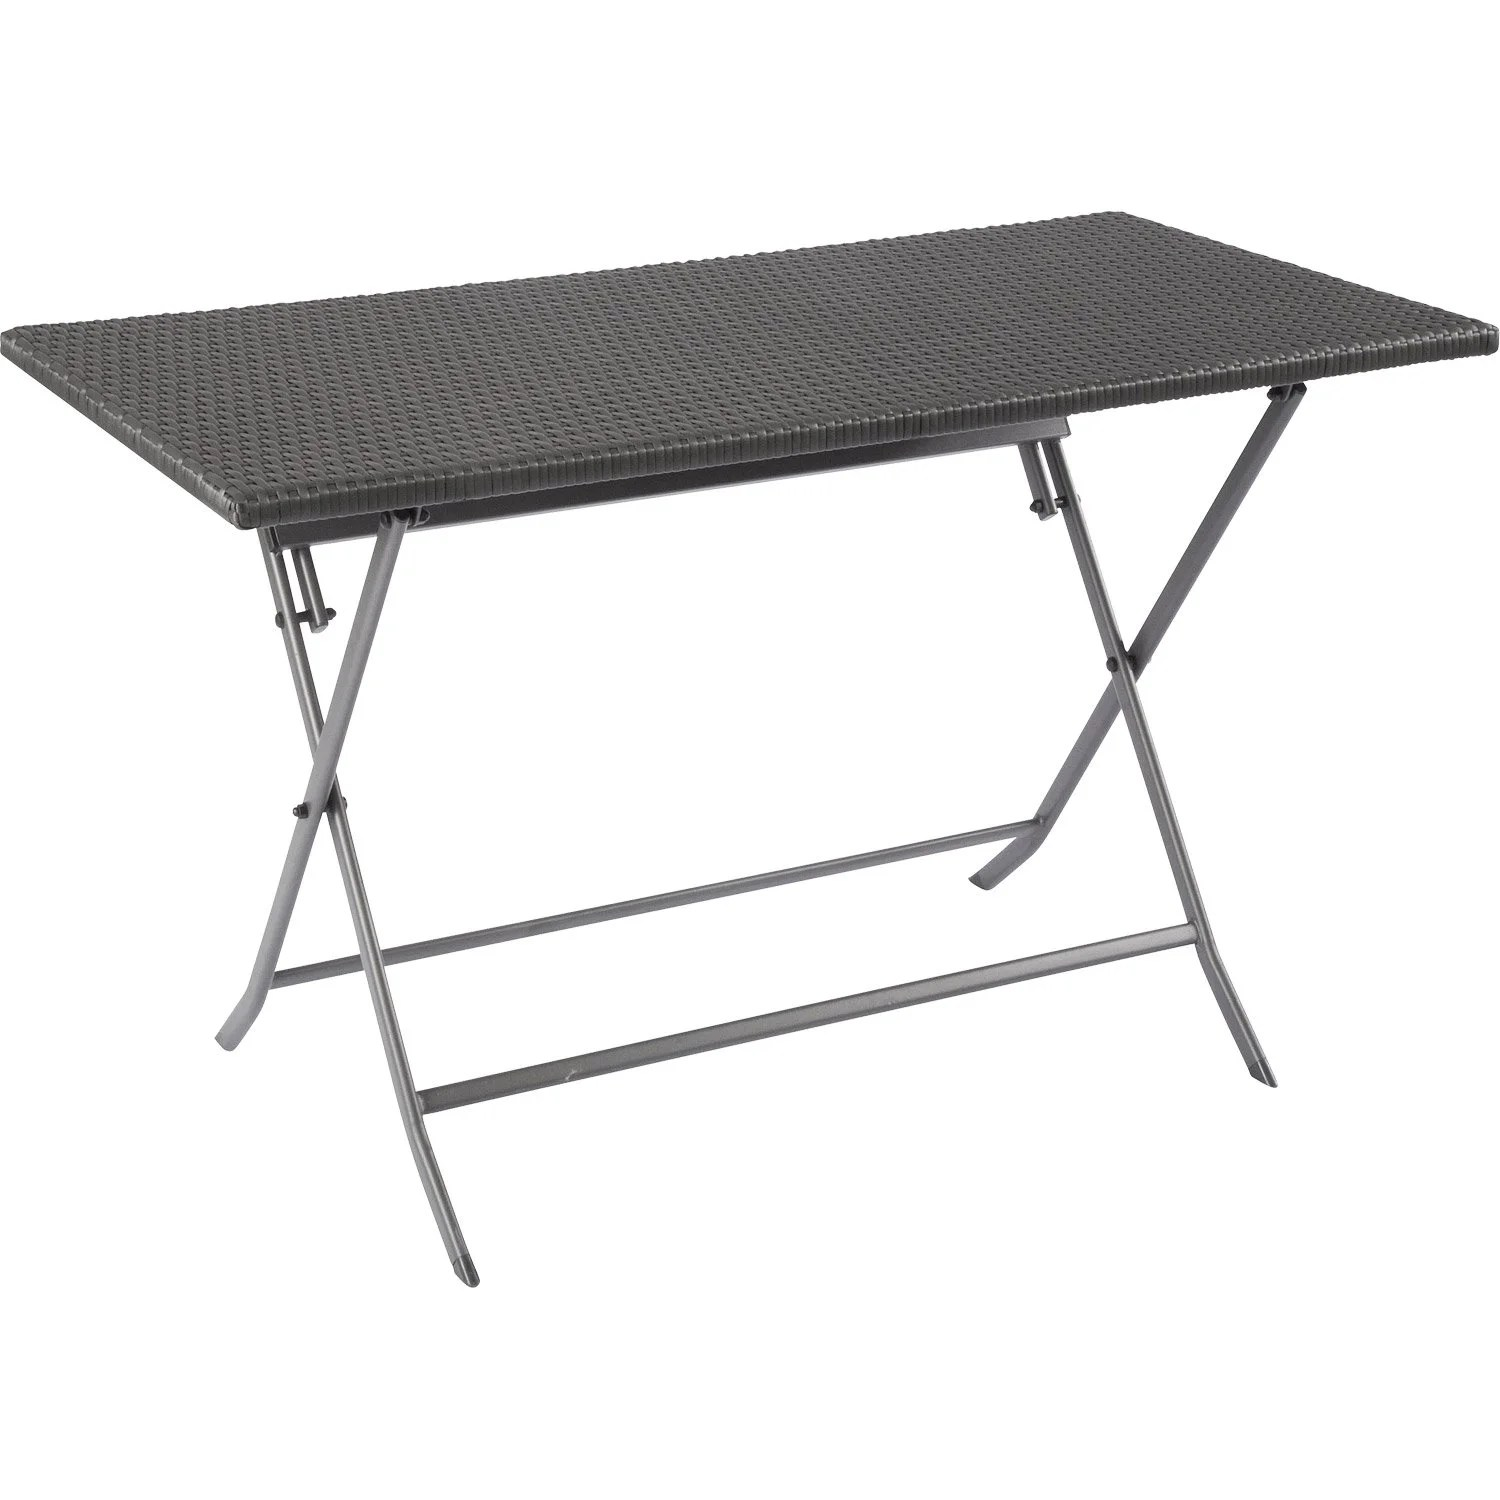 Store Banne Coffre La Redoute Table Jardin Leroy Merlin Table De Jardin Aluminium Leroy